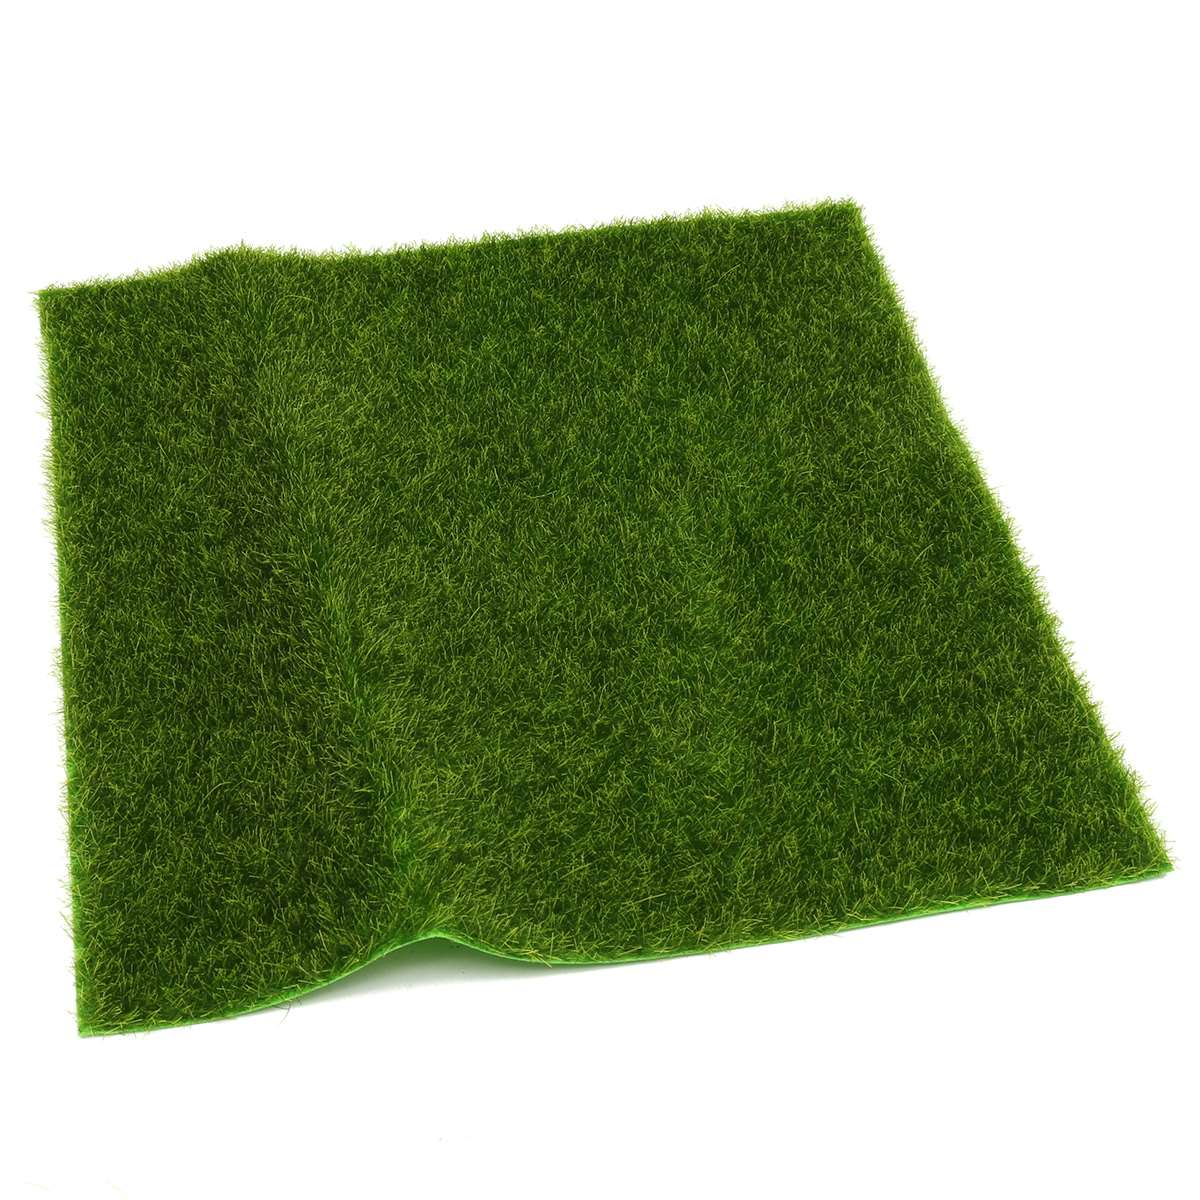 Grass Floor Mats Promotion Shop For Promotional Grass